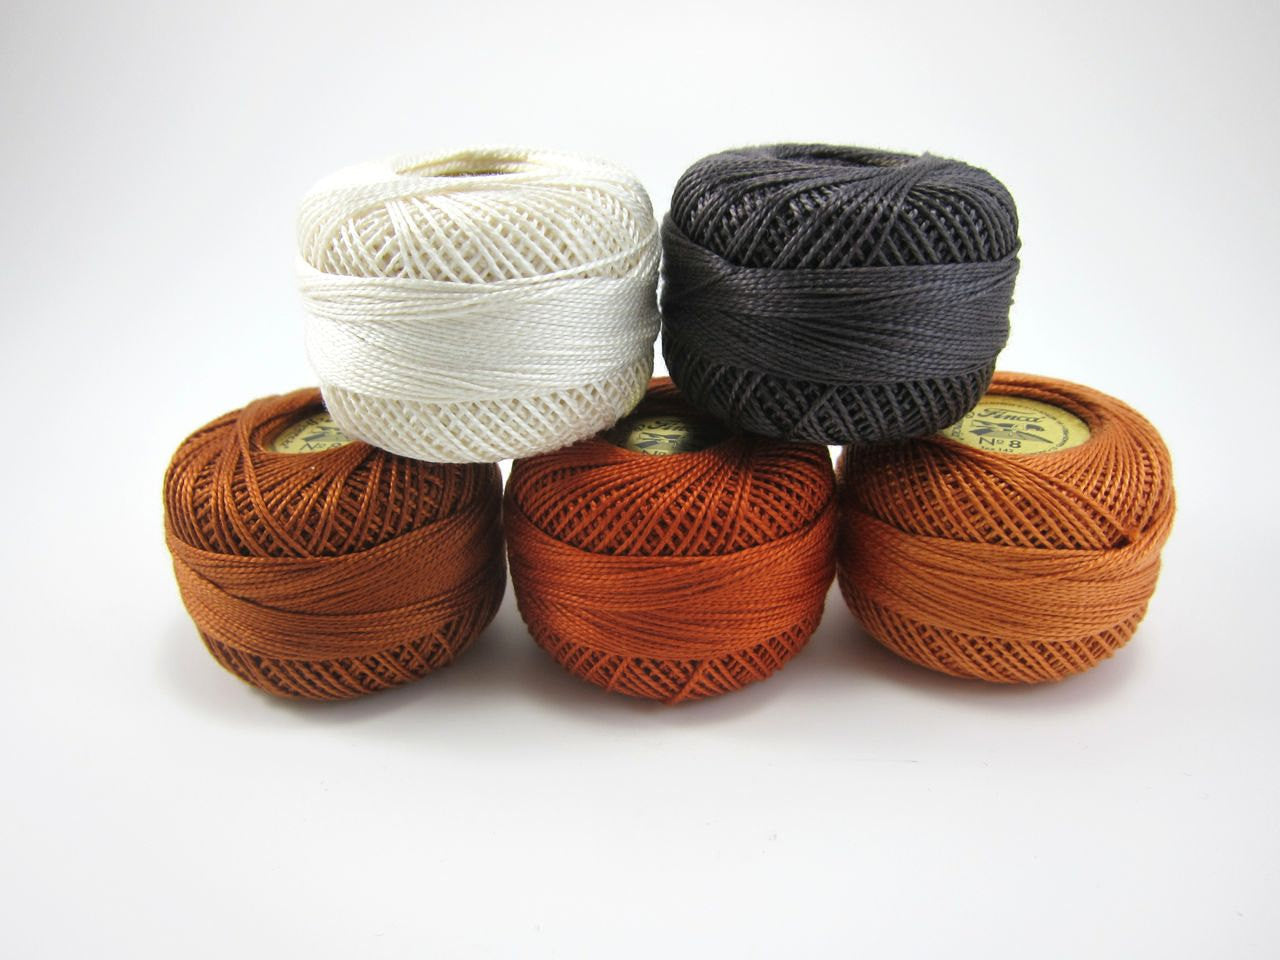 Fall Breeze Finca Perle Cotton Thread Set Perle Cotton - Snuggly Monkey